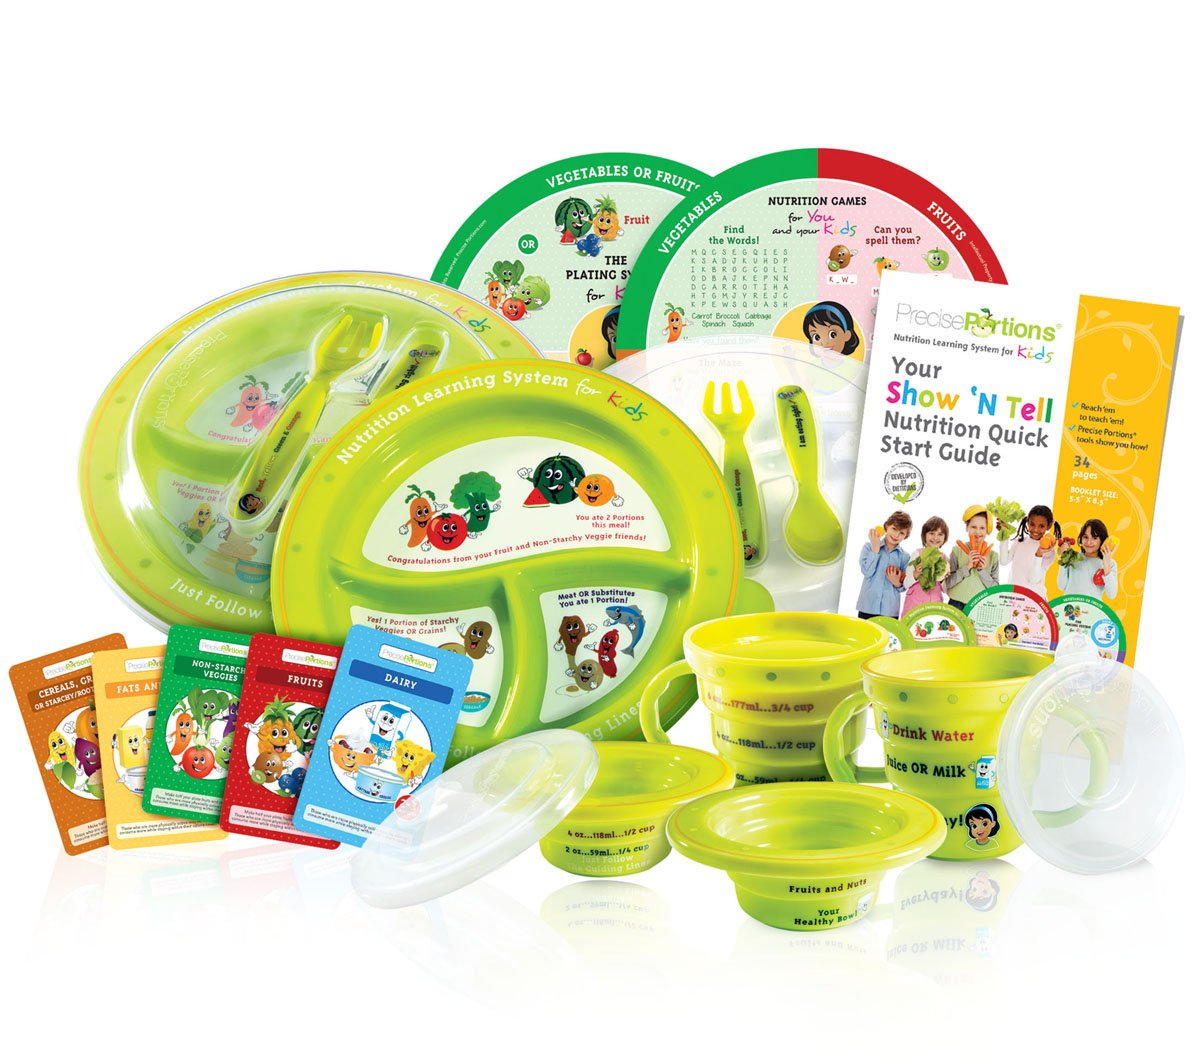 Precise Portions Show 'N Tell Know-It-All Complete Nutrition Pack, Diet Plates Portion Control for Kids- Includes Bowl, Plate, Cup, 2Saucers, 2Nutrition Game Wheels & 52Flash Cards Parent's Guidebook